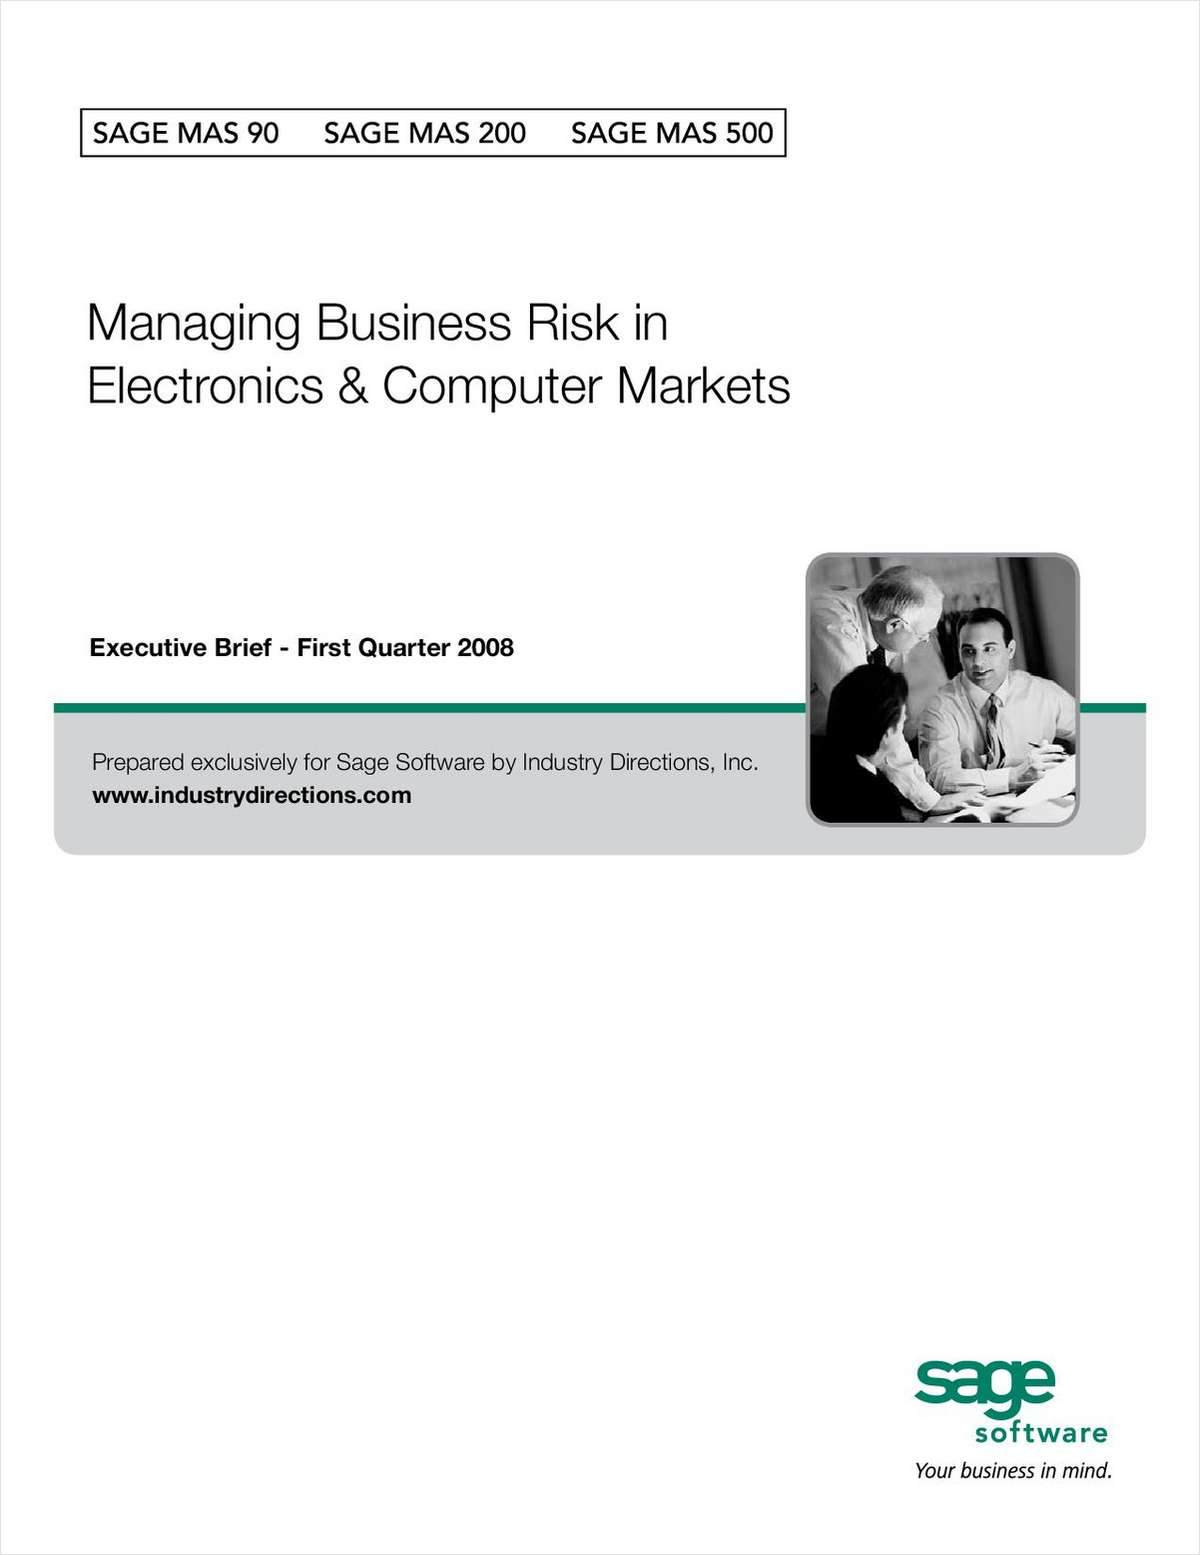 Managing Business Risk in Electronics and Computer Markets